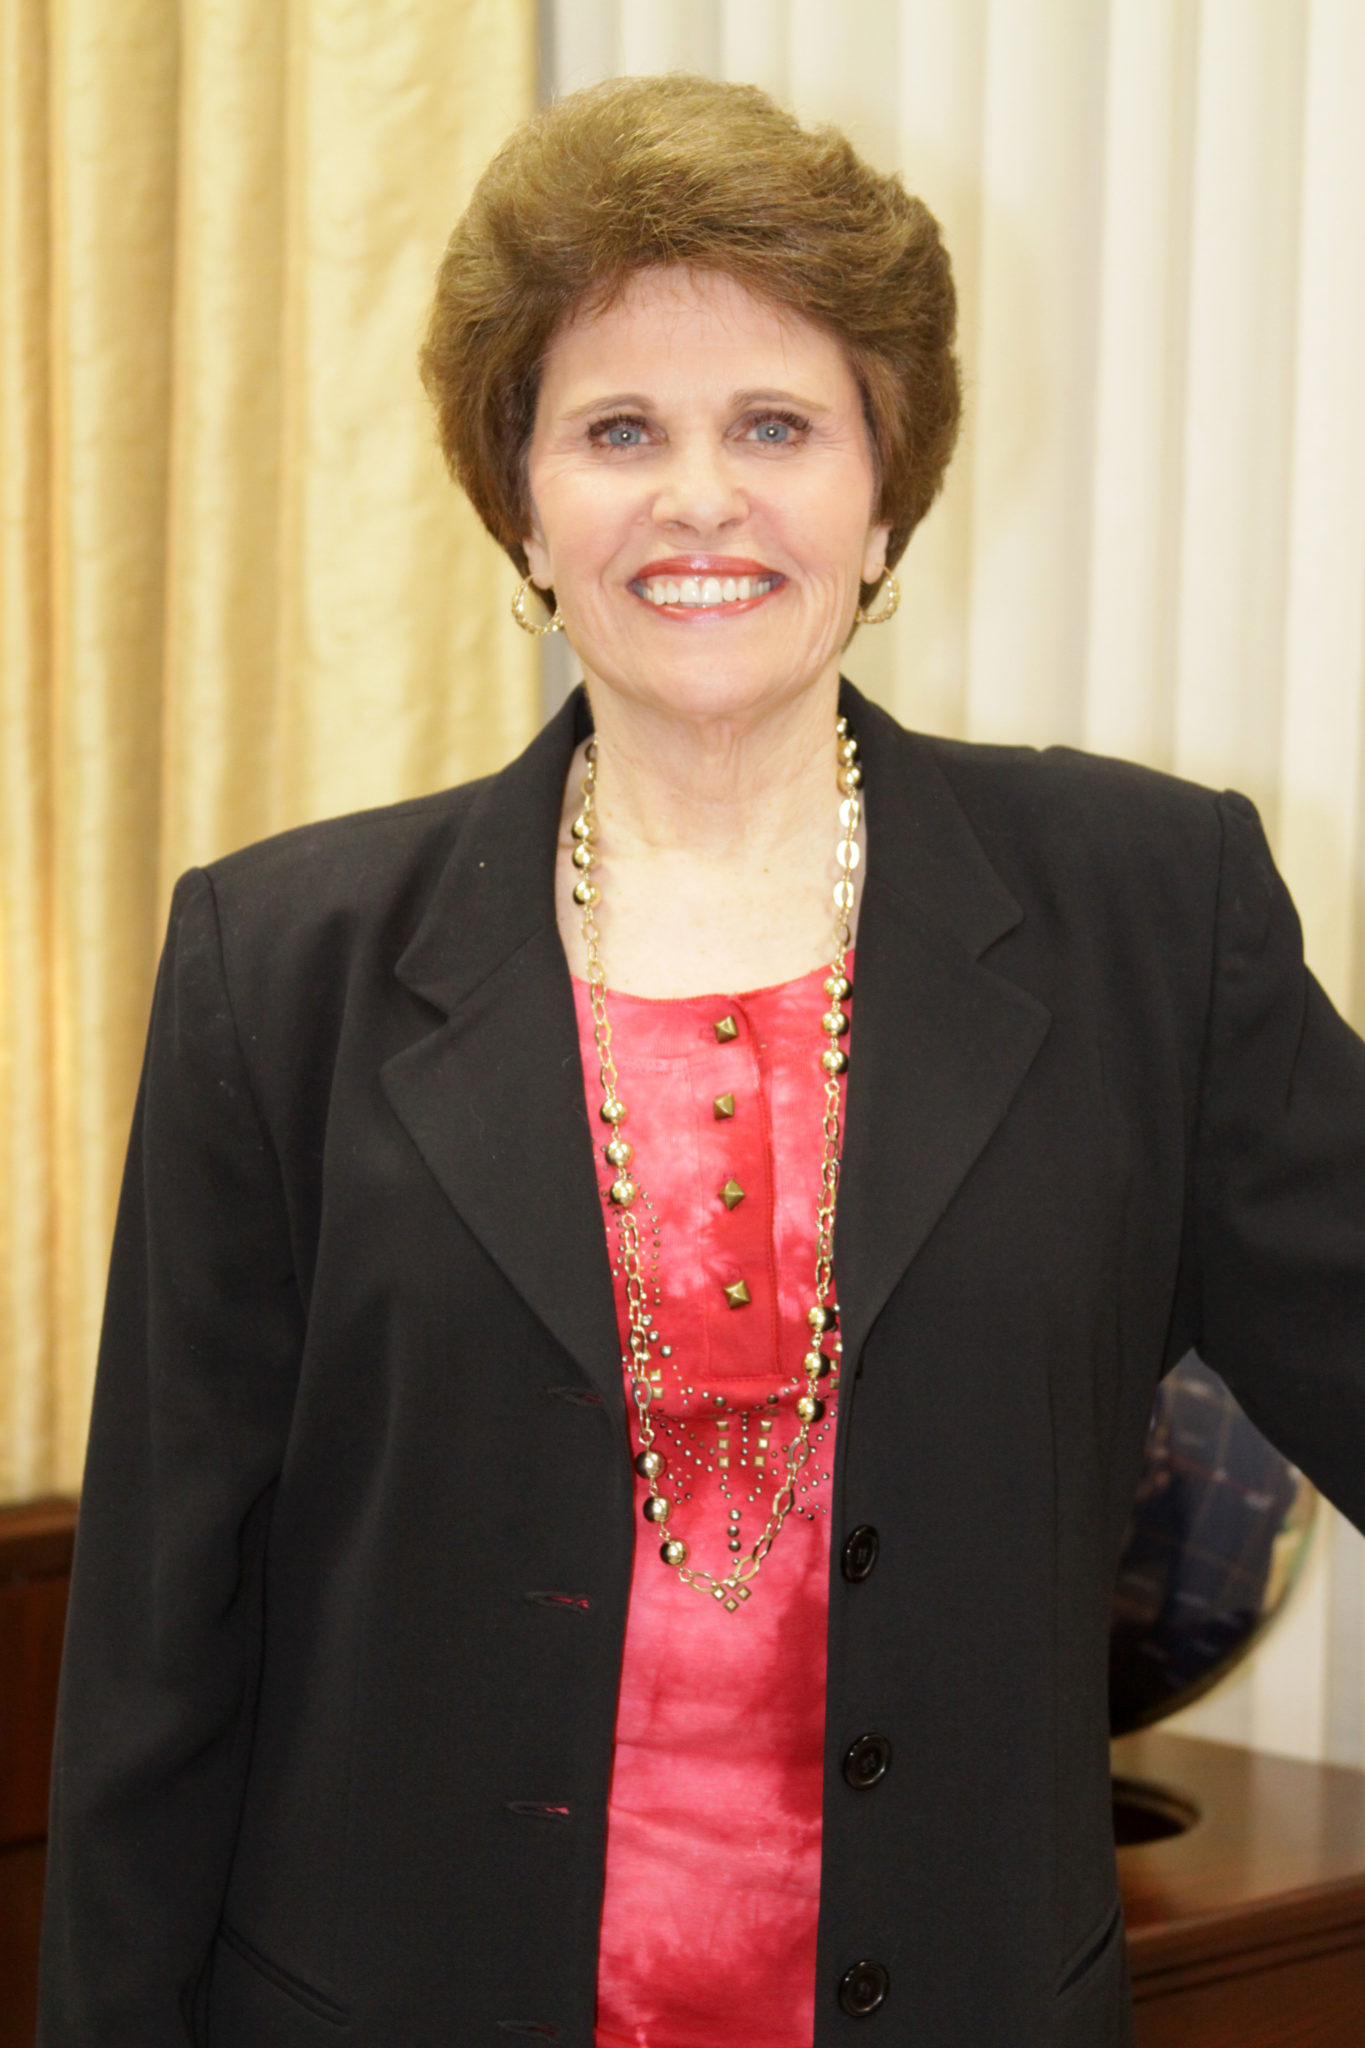 Dr. Sandra G. Kennedy, Founder and Pastor